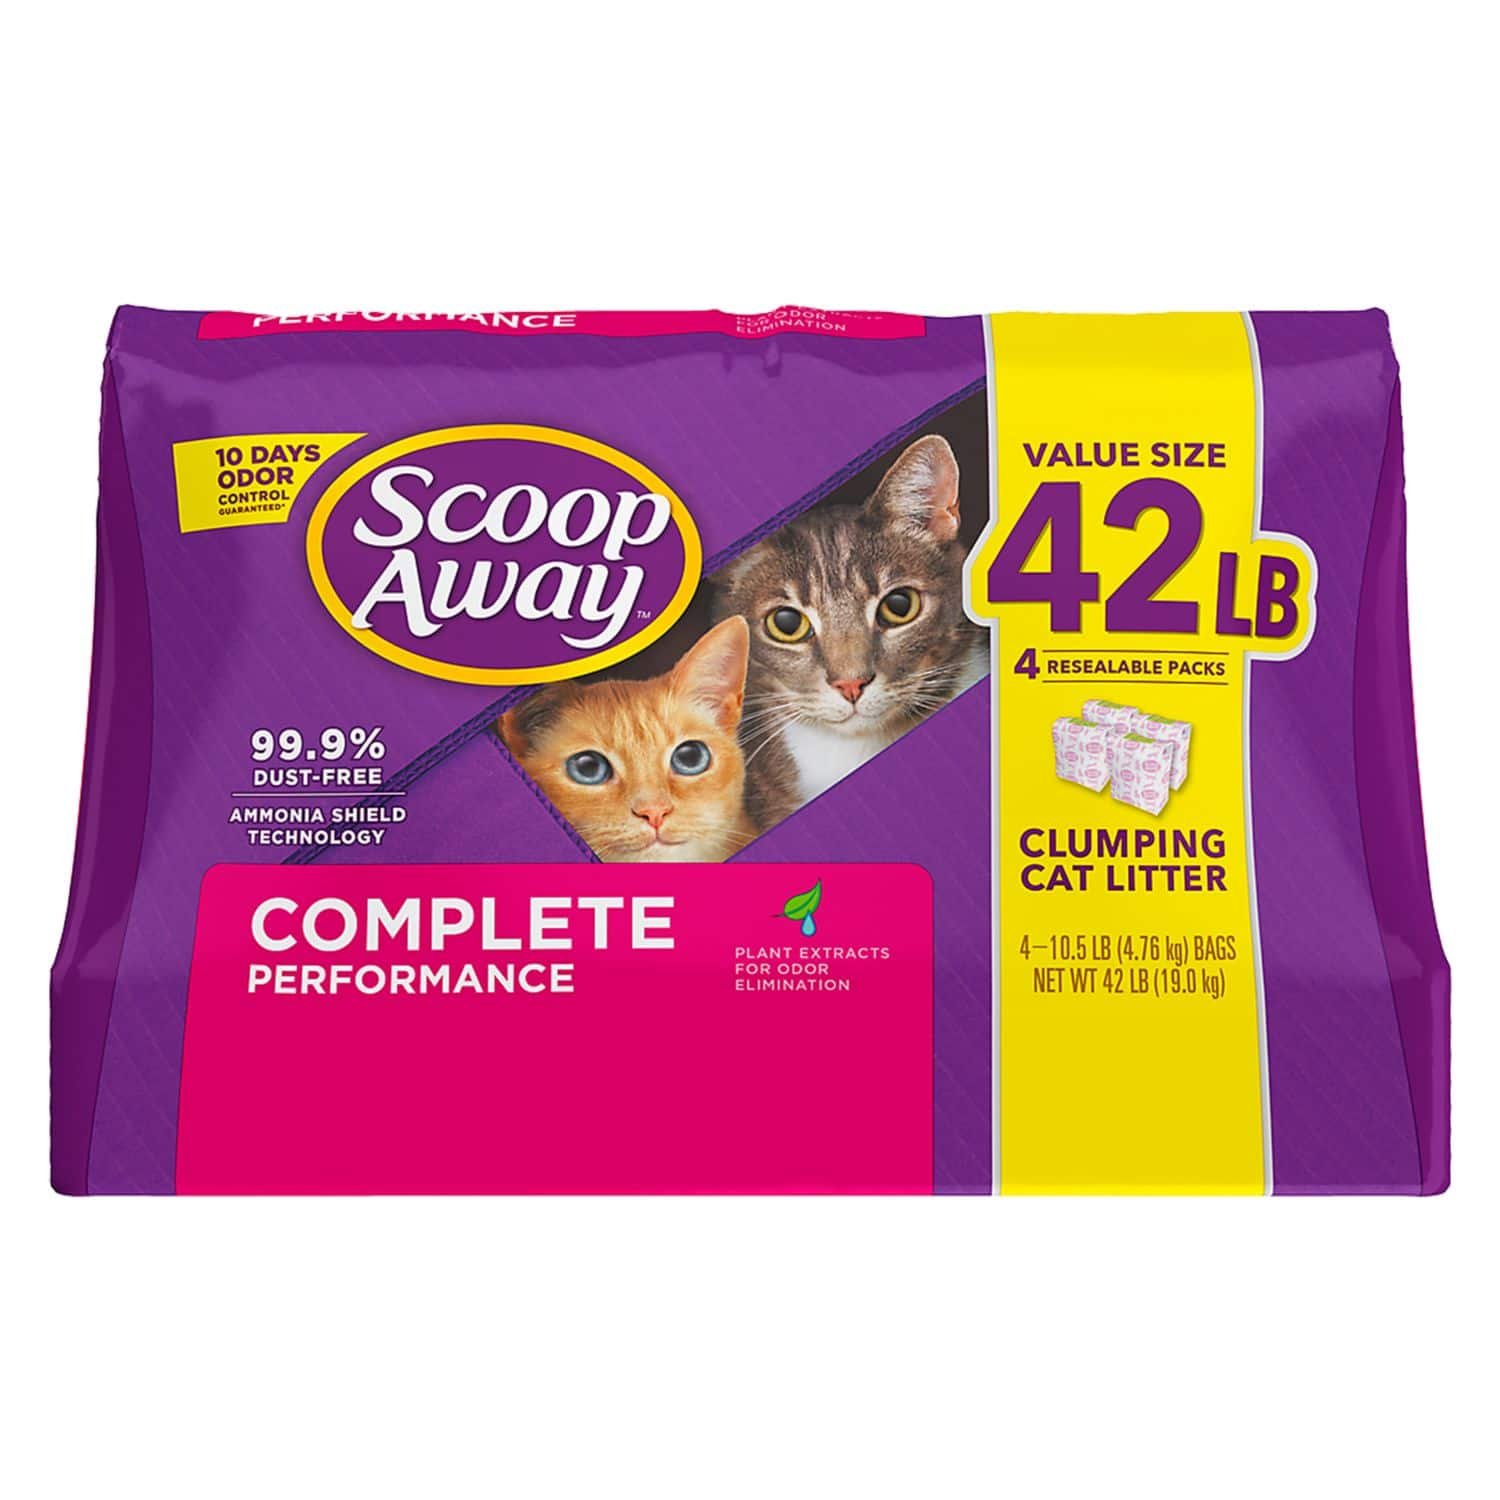 Scoop Away Complete Performance Clumping Cat Litter, 42 lbs - In Store Only - | Costco $9.69